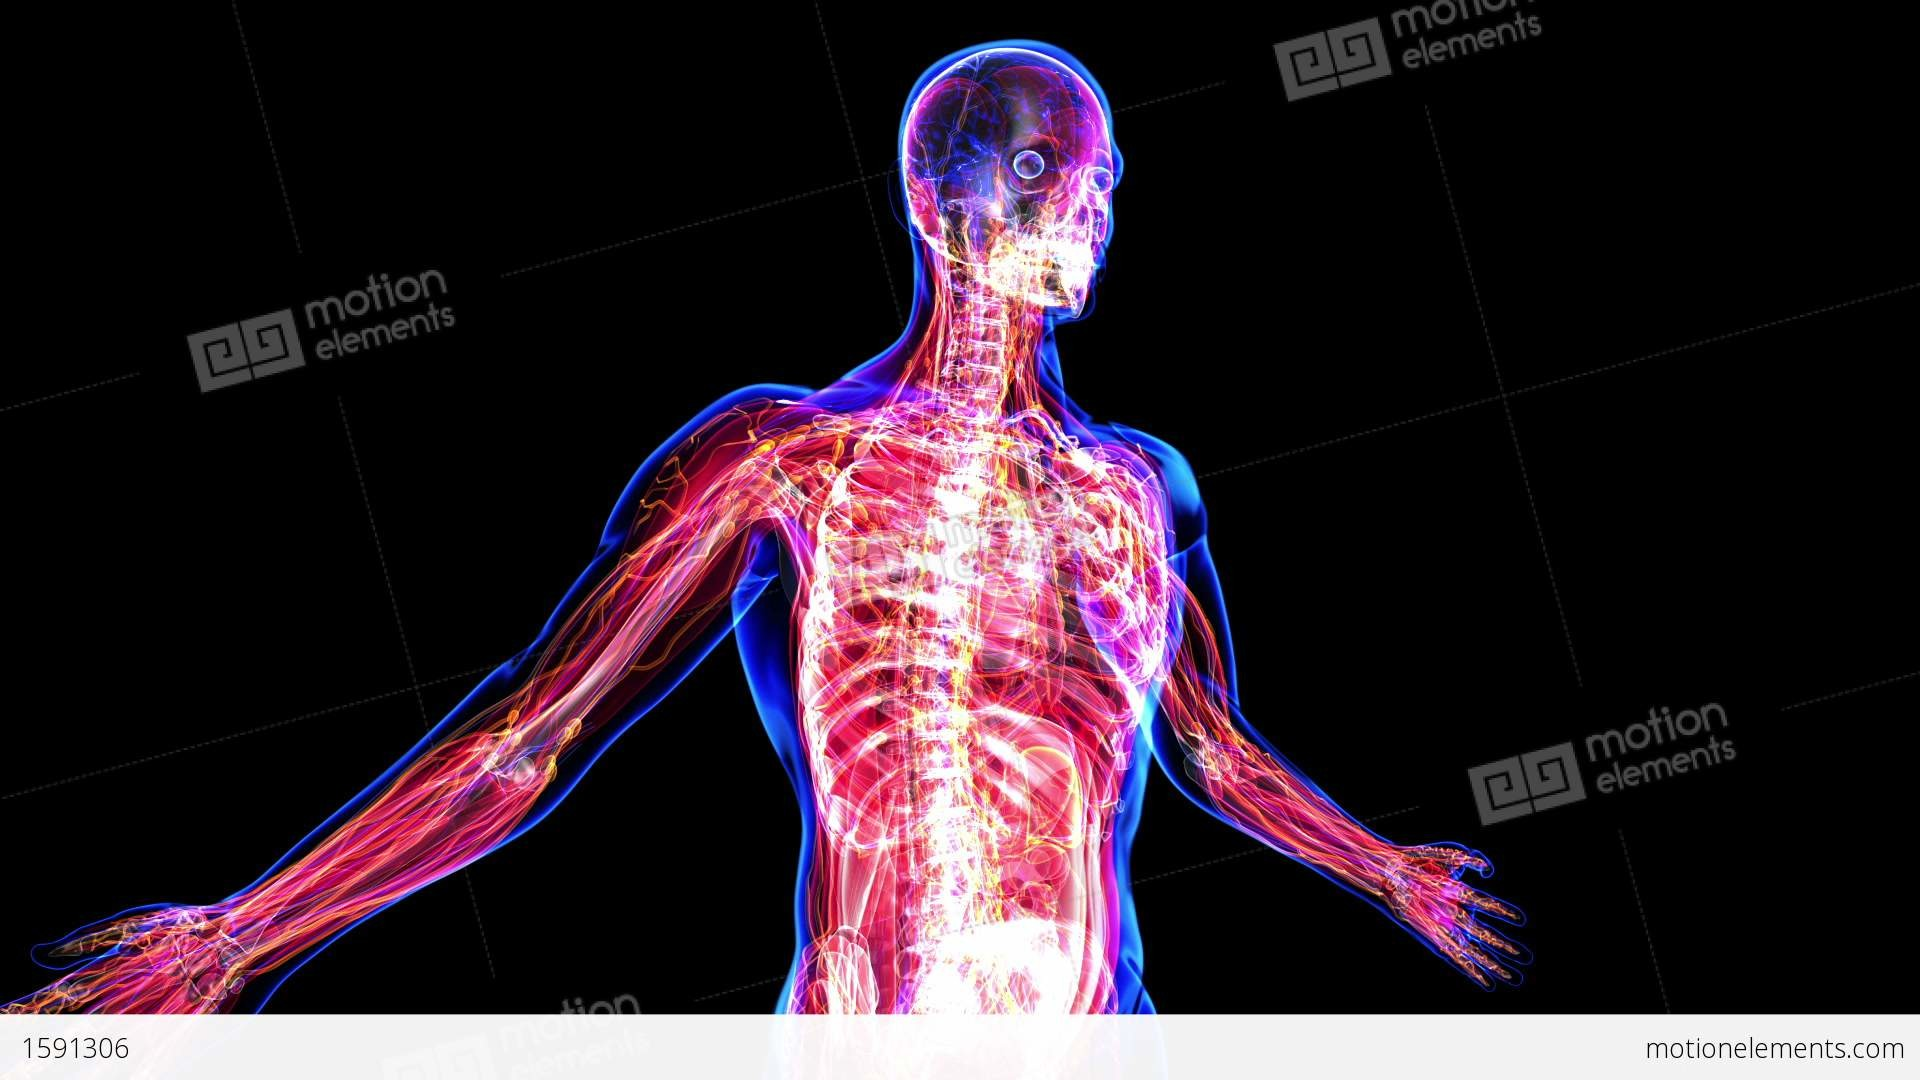 1920x1080 ... Wallpapers Inner Human Body Image Hd Anatomy Of The Human Body Stock  Animation Royalty Free Stock ...